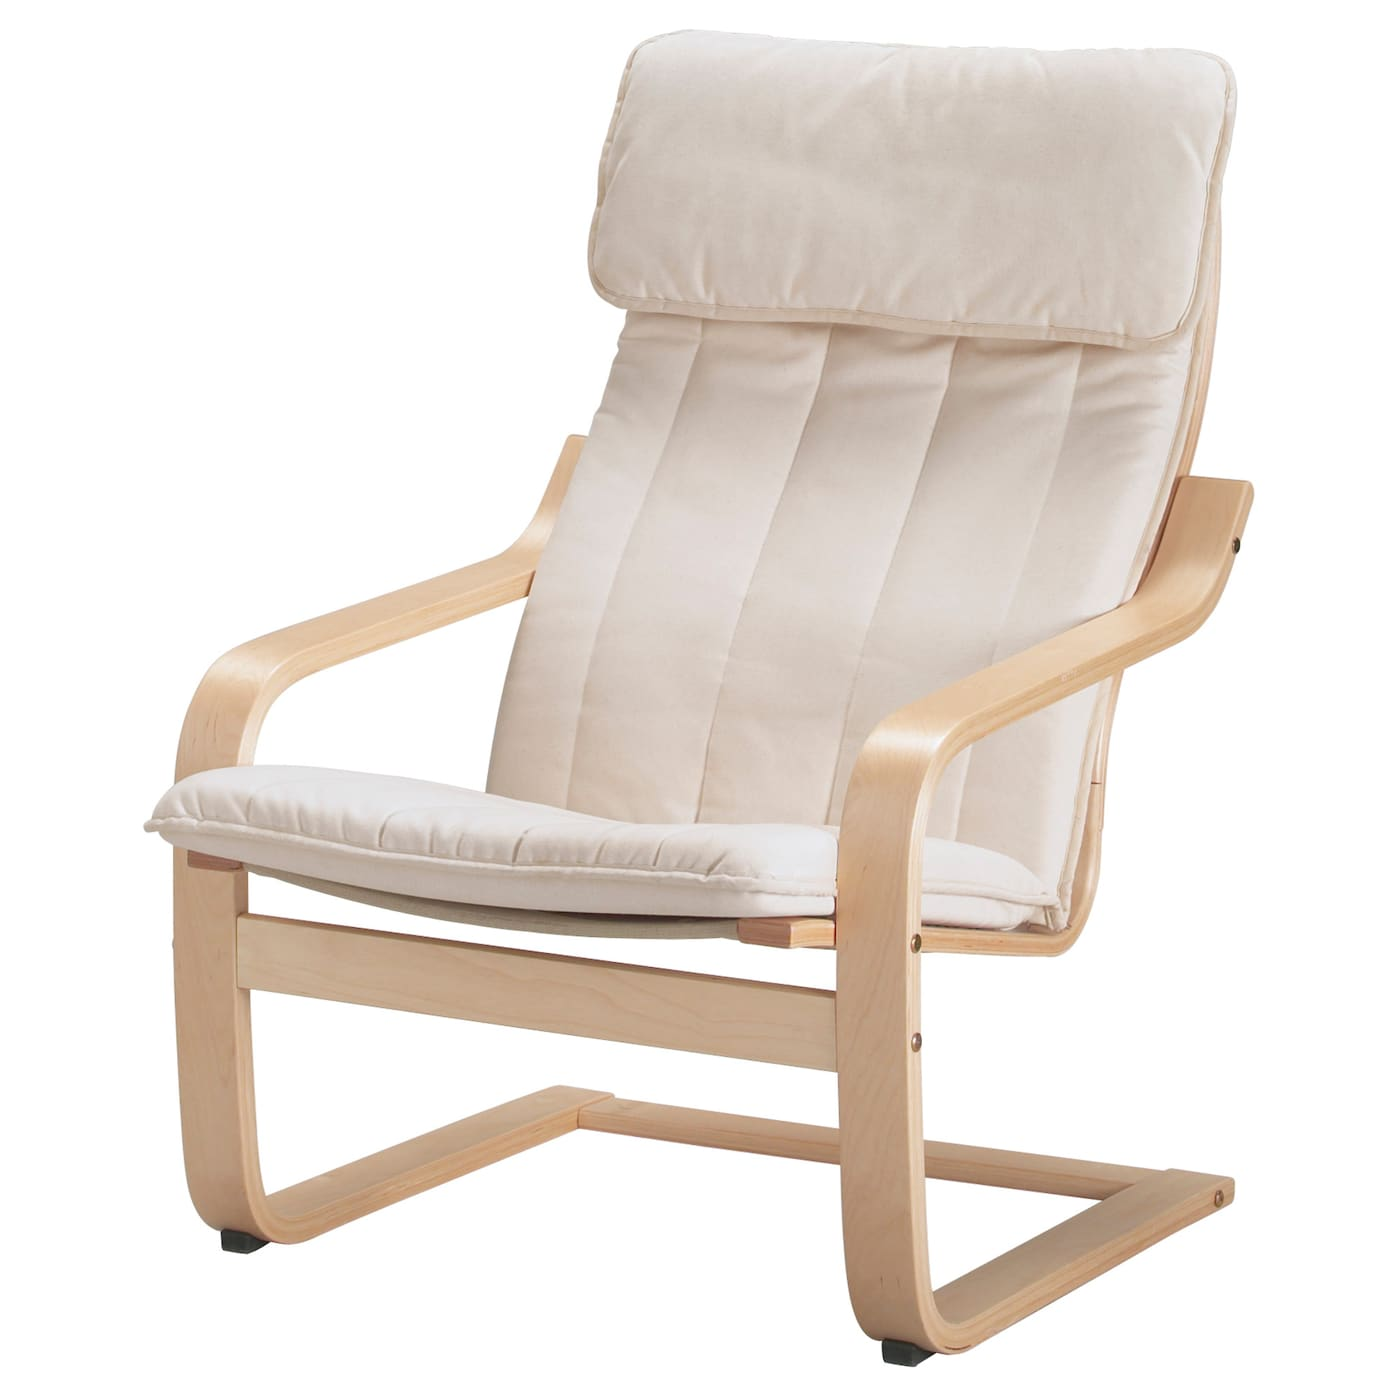 Po ng armchair birch veneer ransta natural ikea for Childrens rocking chair ikea